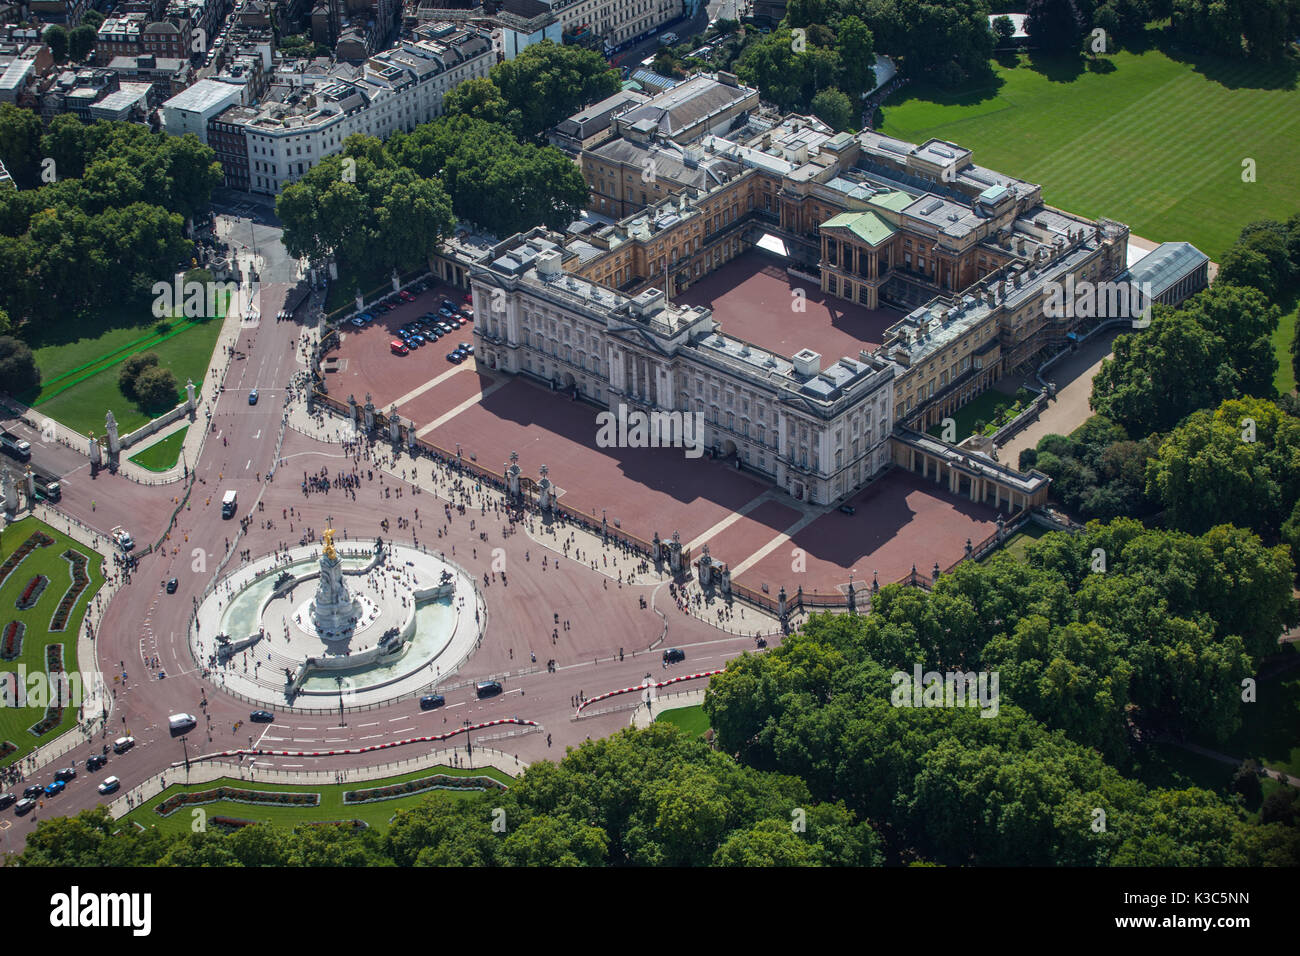 Aerial of Buckingham Palace - Taken on the 20th anniversary of Princess Diana's death - 31st August 2017 from helicopter in London. - Stock Image